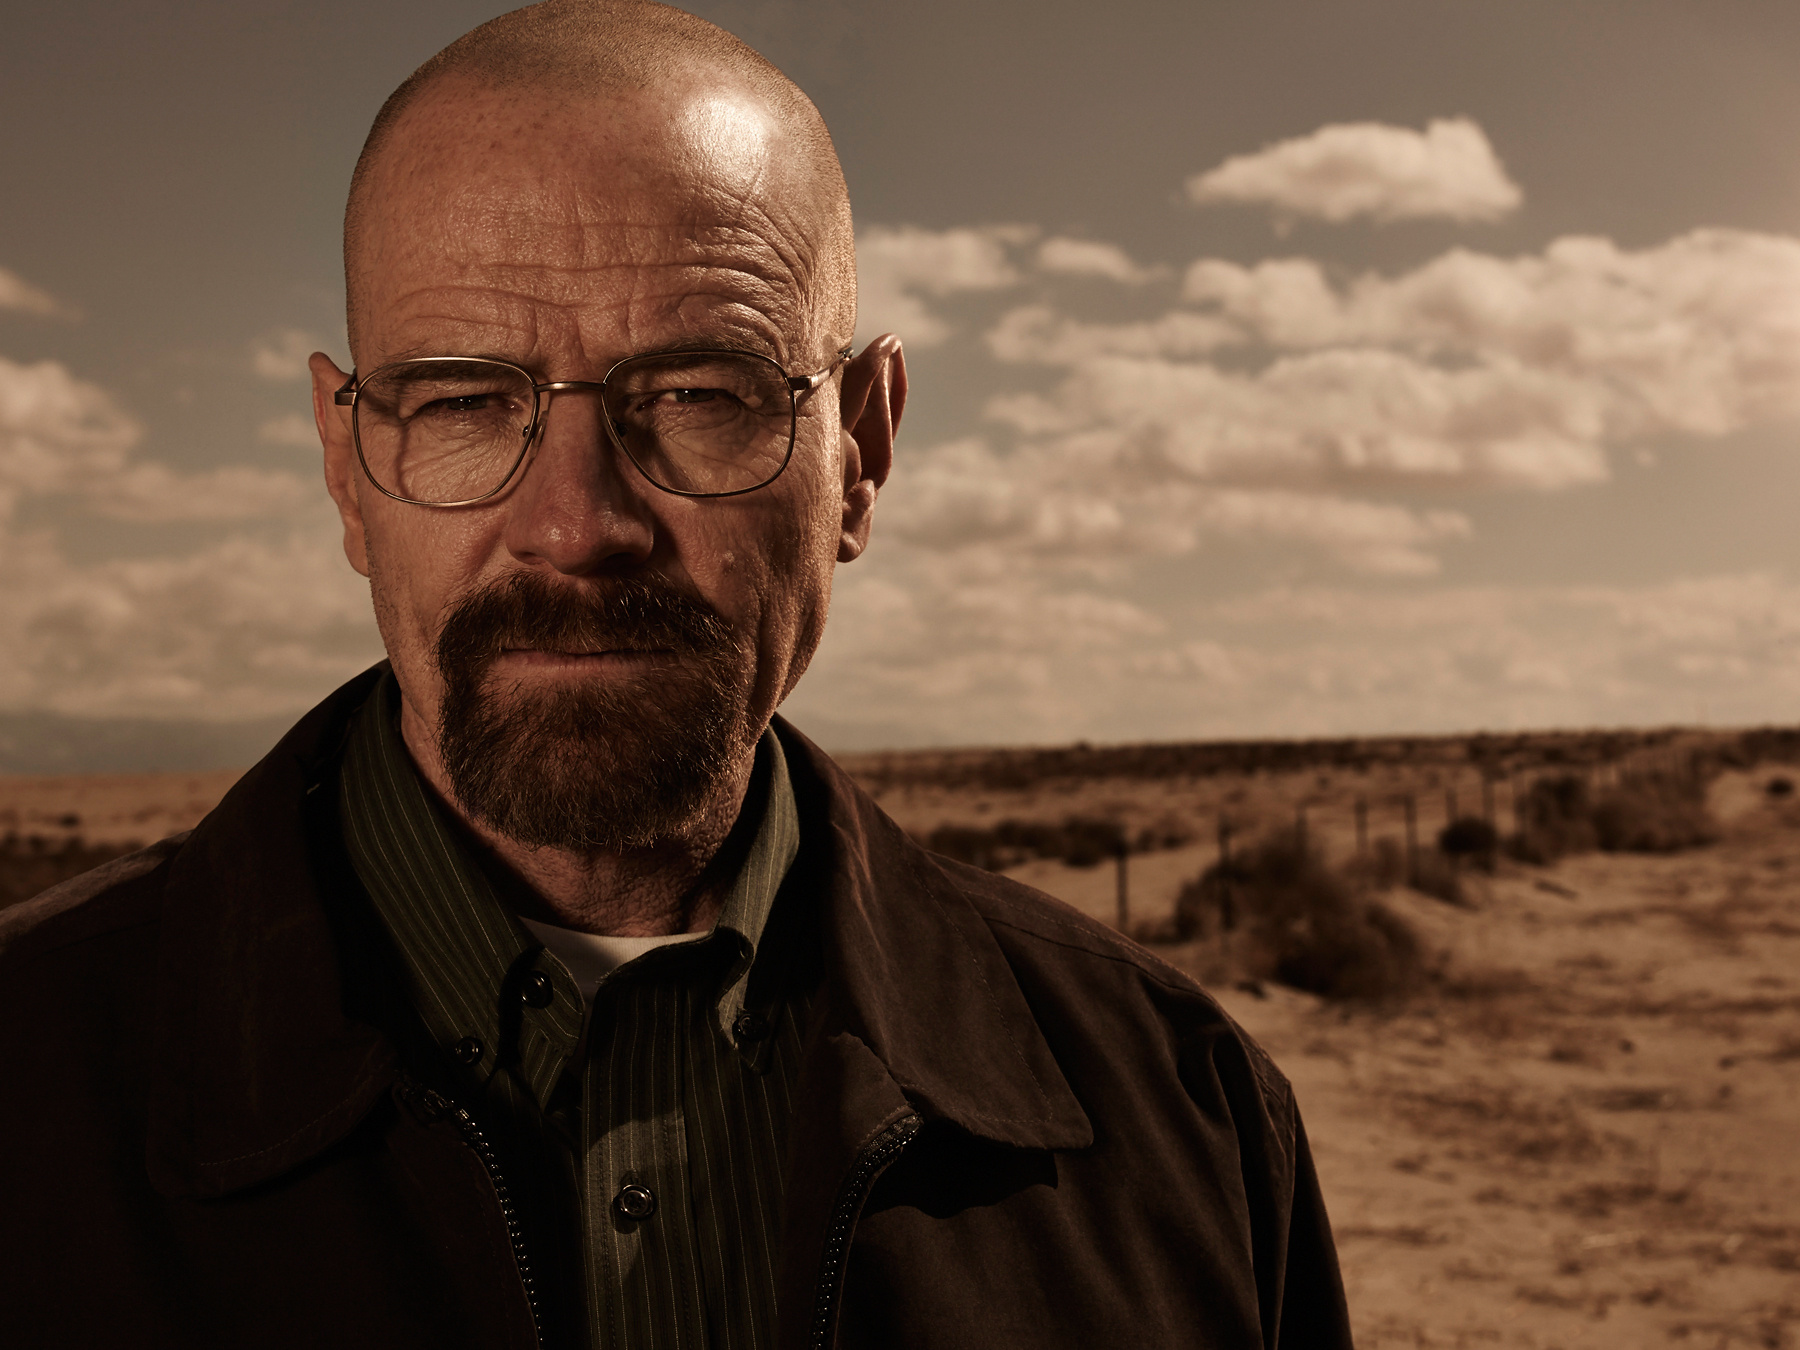 EDITOR'S PICK: The hidden truth behind Walter White's TAG Heuer Monaco in Breaking Bad